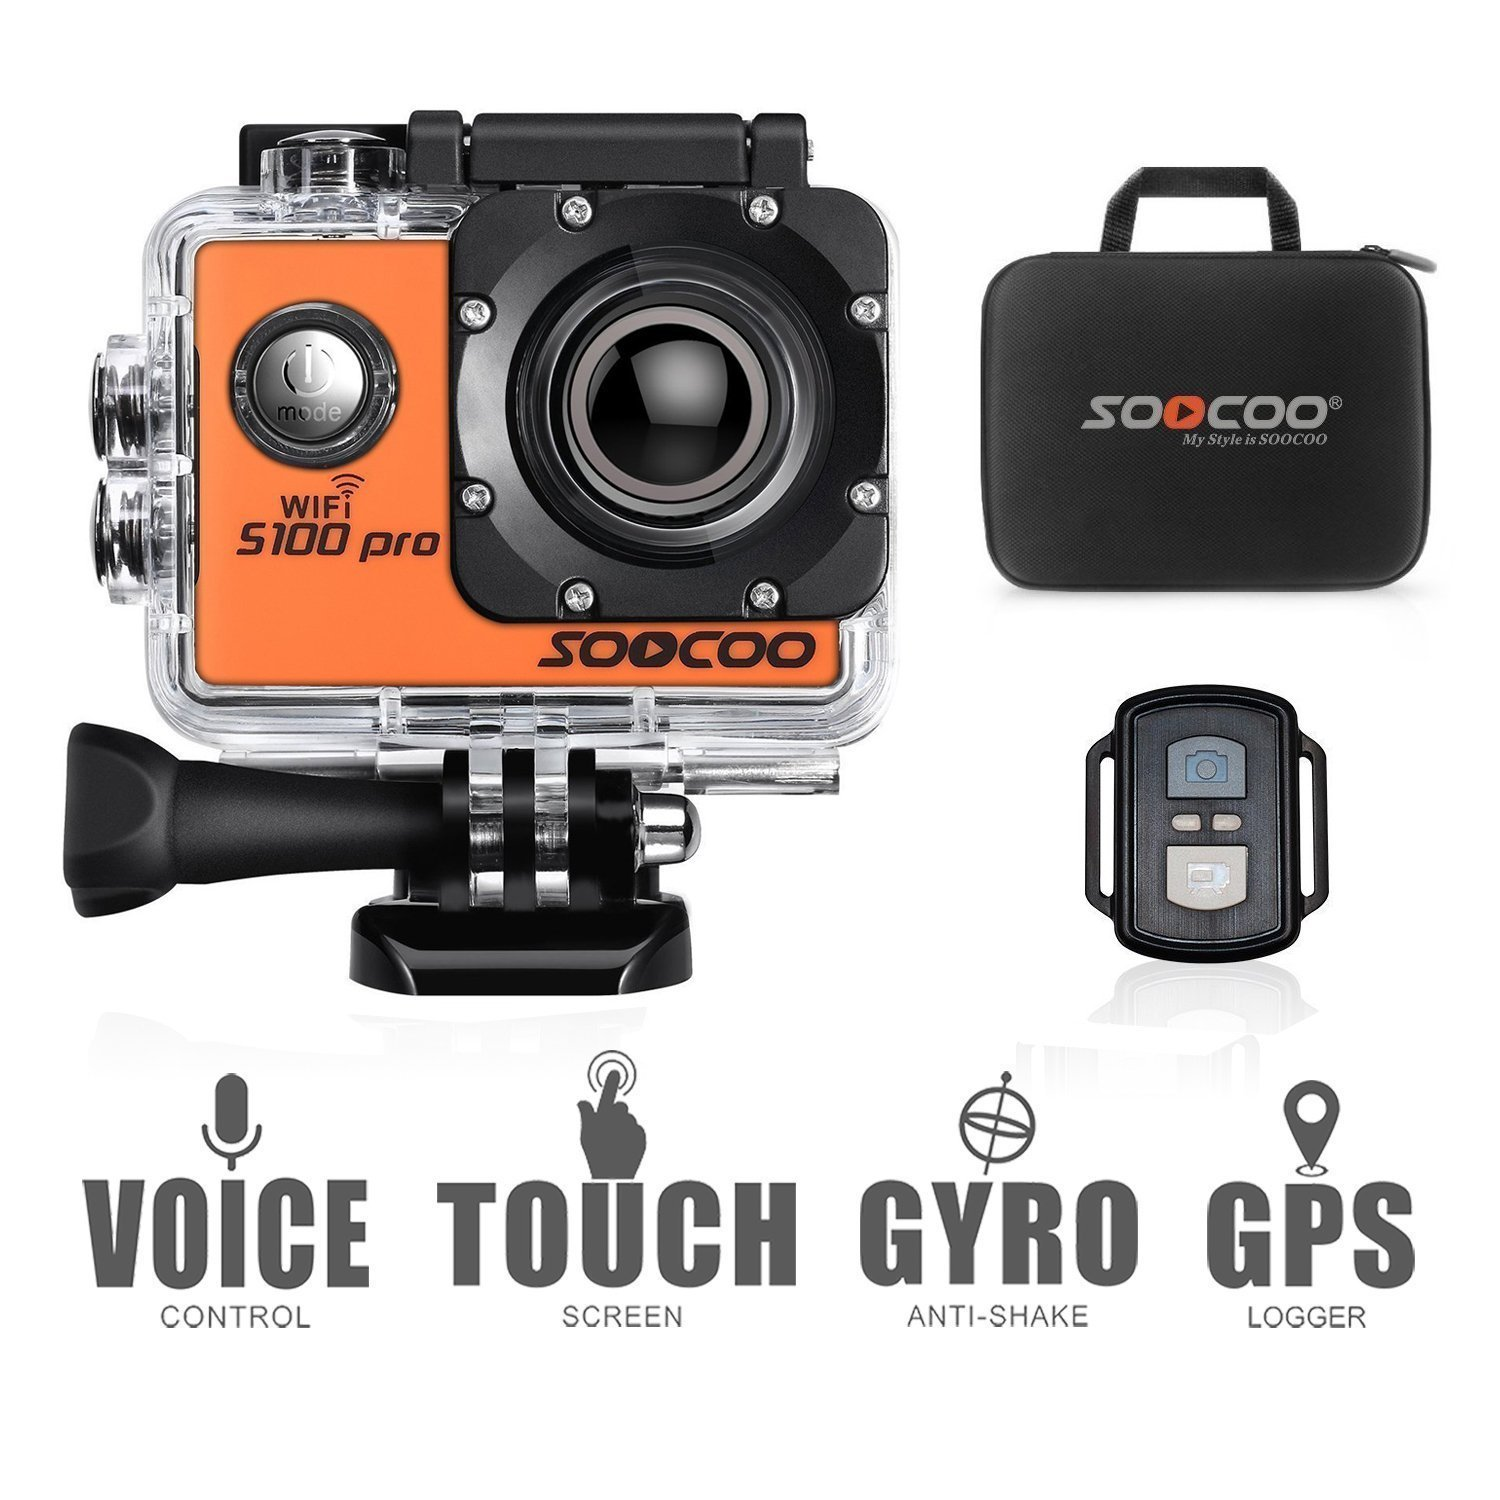 4K WiFi Action Camera Touchscreen, SOOCOO S100 Pro Sports Camera Ultra HD Waterproof DV Camcorder Voice Control 20MP 170°Wide-Angle 2'' LCD 2.4G Remote Control/2 Batteries/17 Kits Travel Bag-Orange by SOOCOO